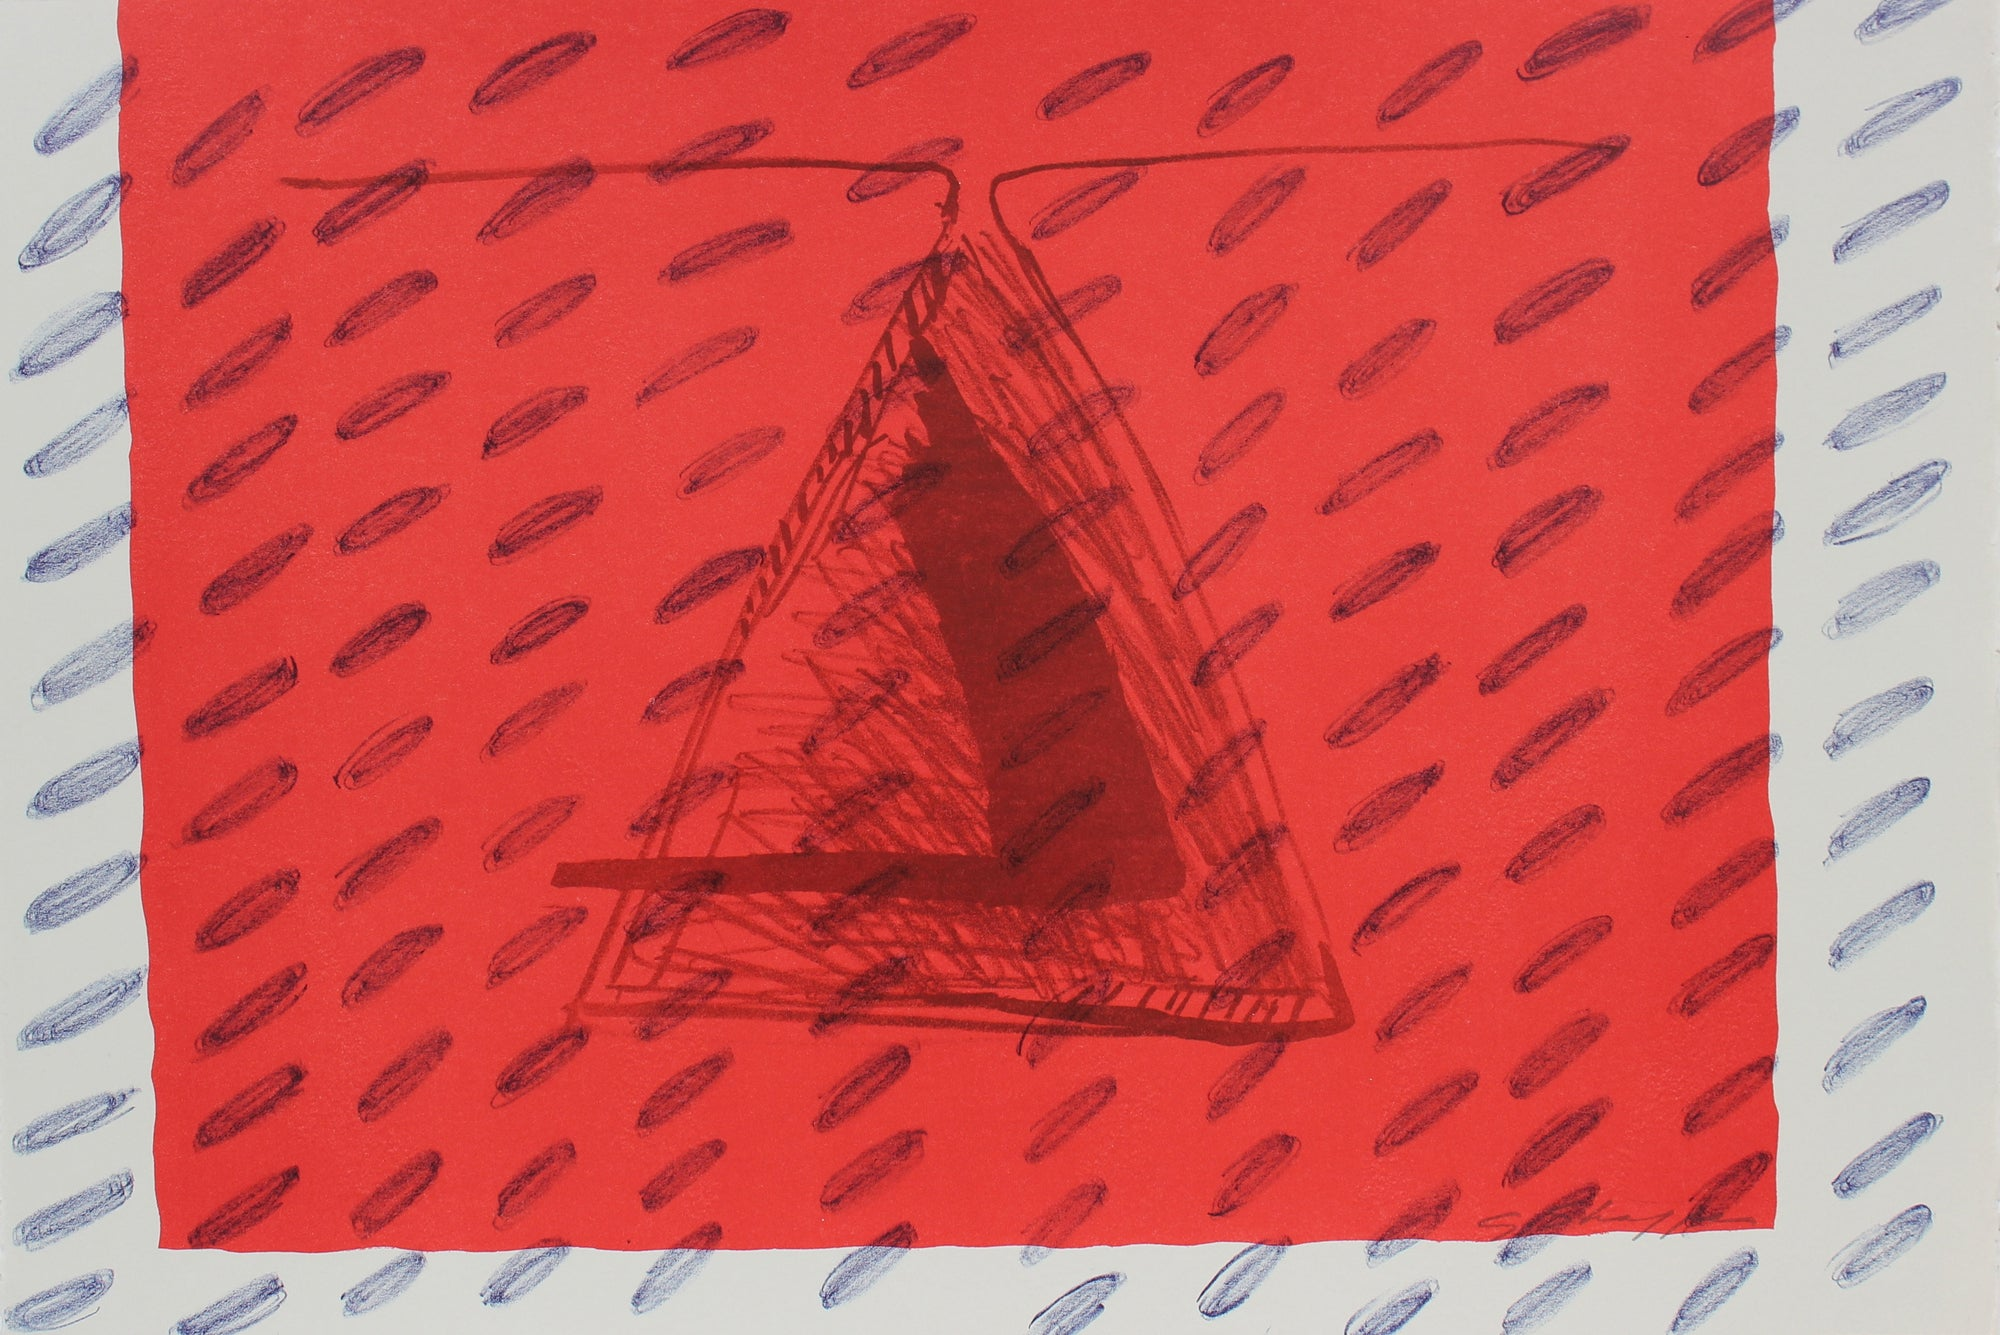 Abstracted Print in Red<br>1999 Lithograph <br><br>#96837